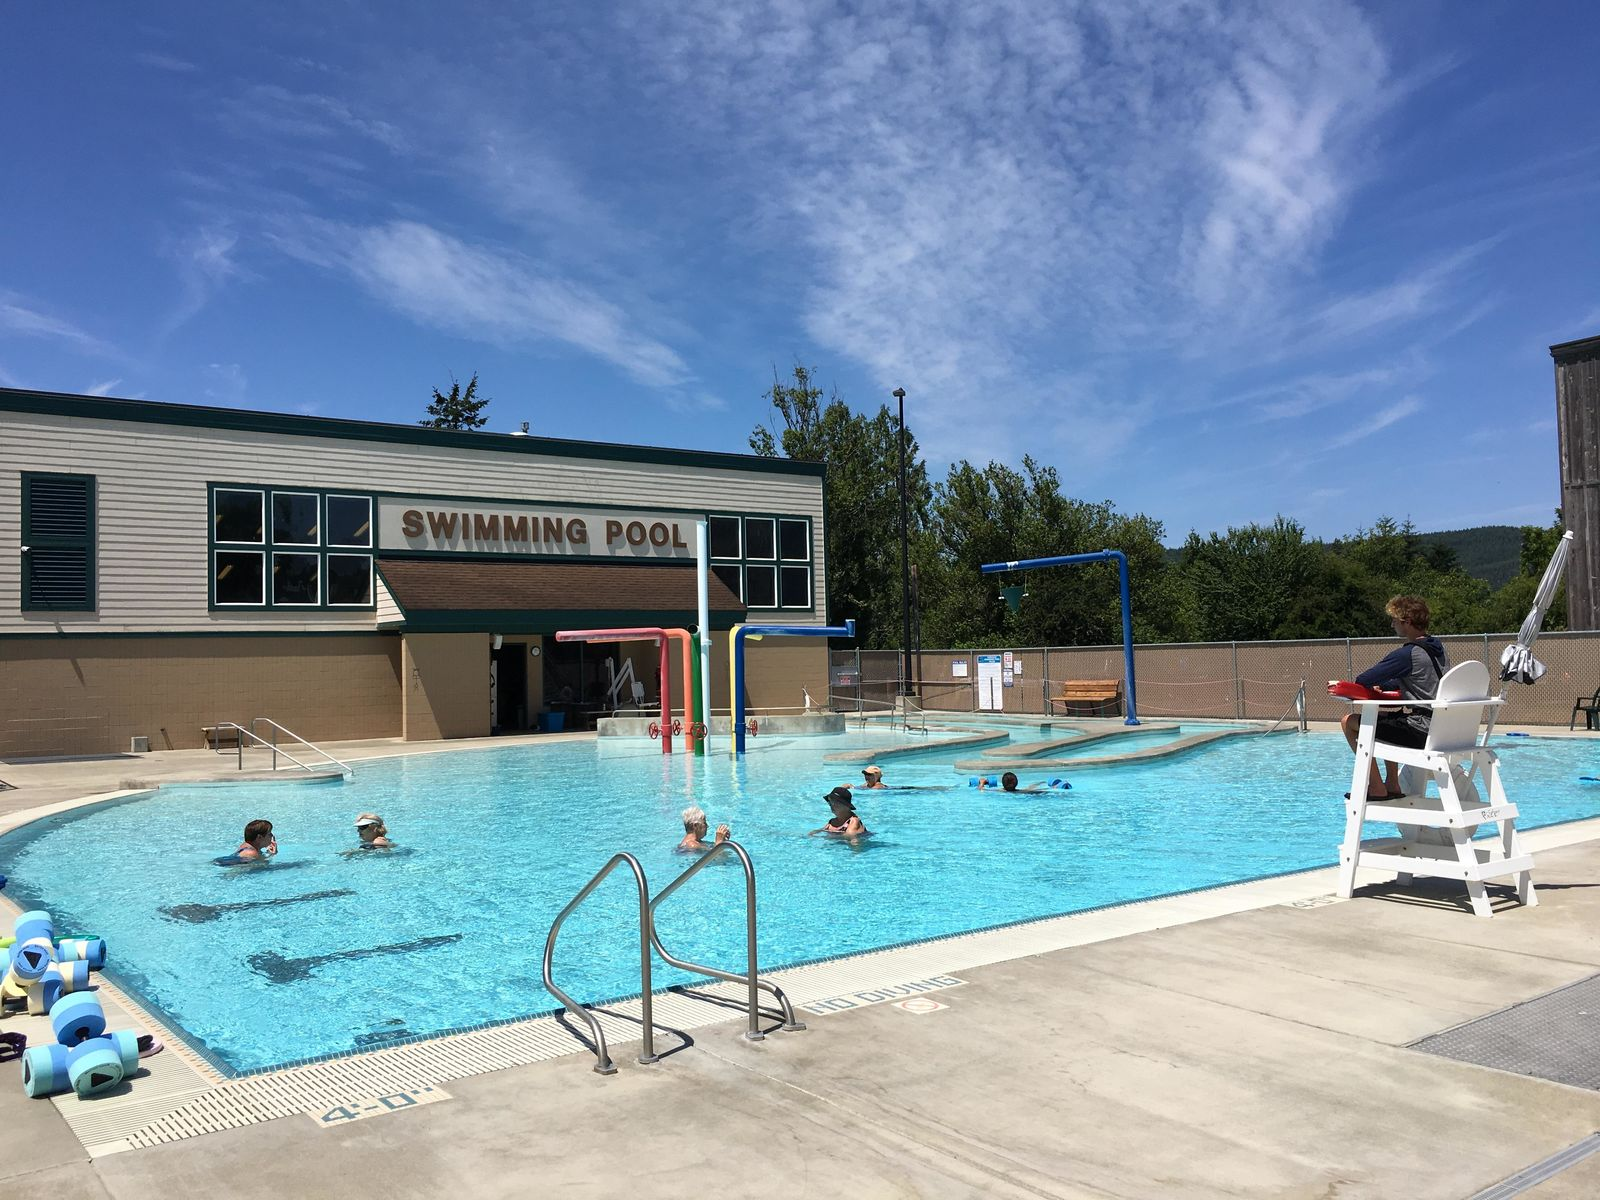 Summer is in full swing at the Coquille Community Pool.